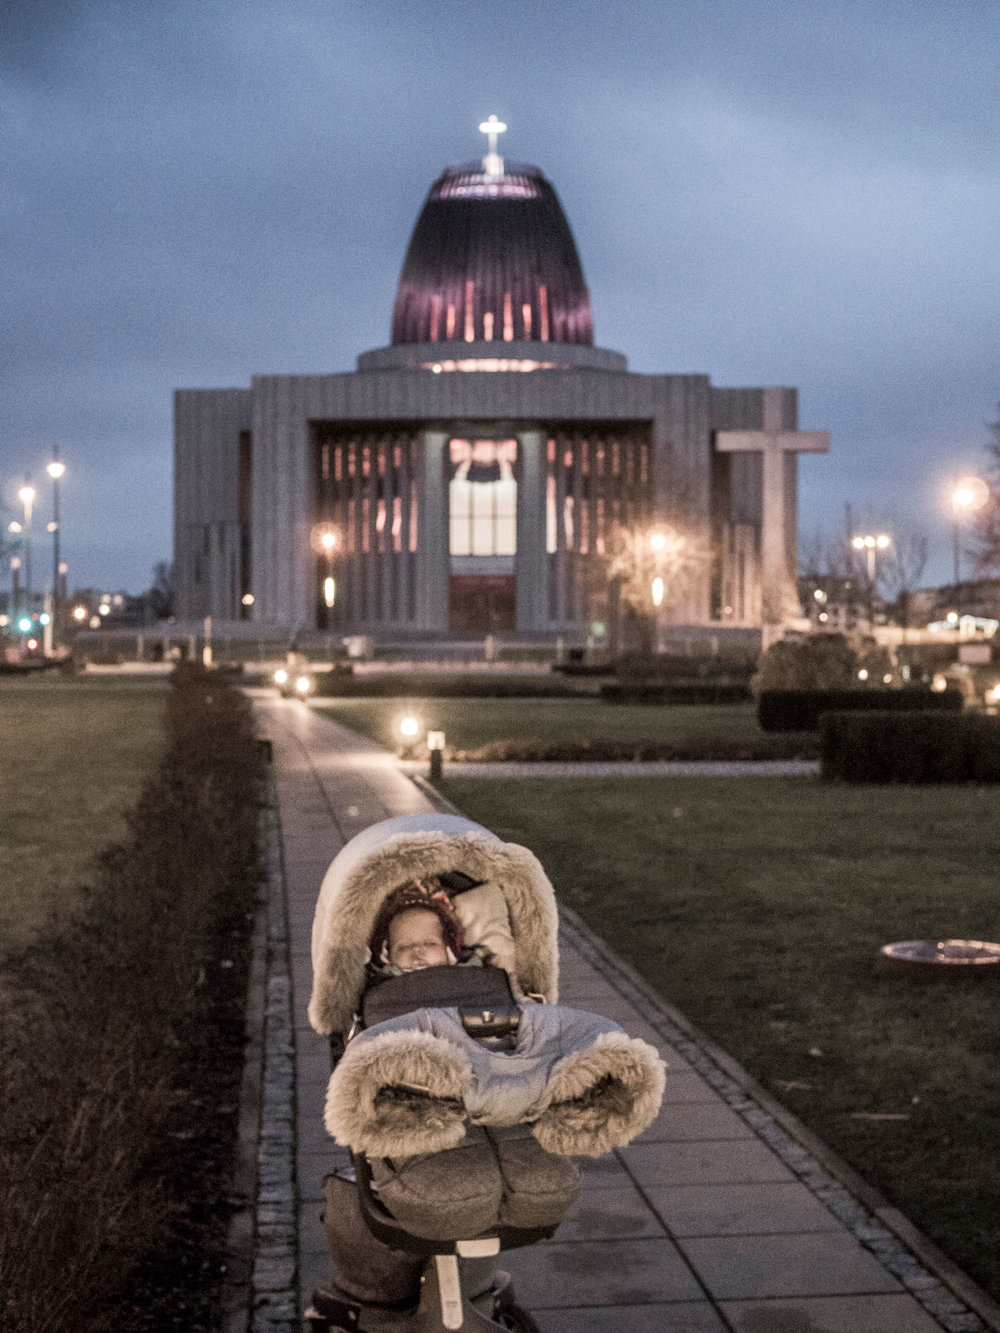 noc night lights city Warsaw Poland children stokke